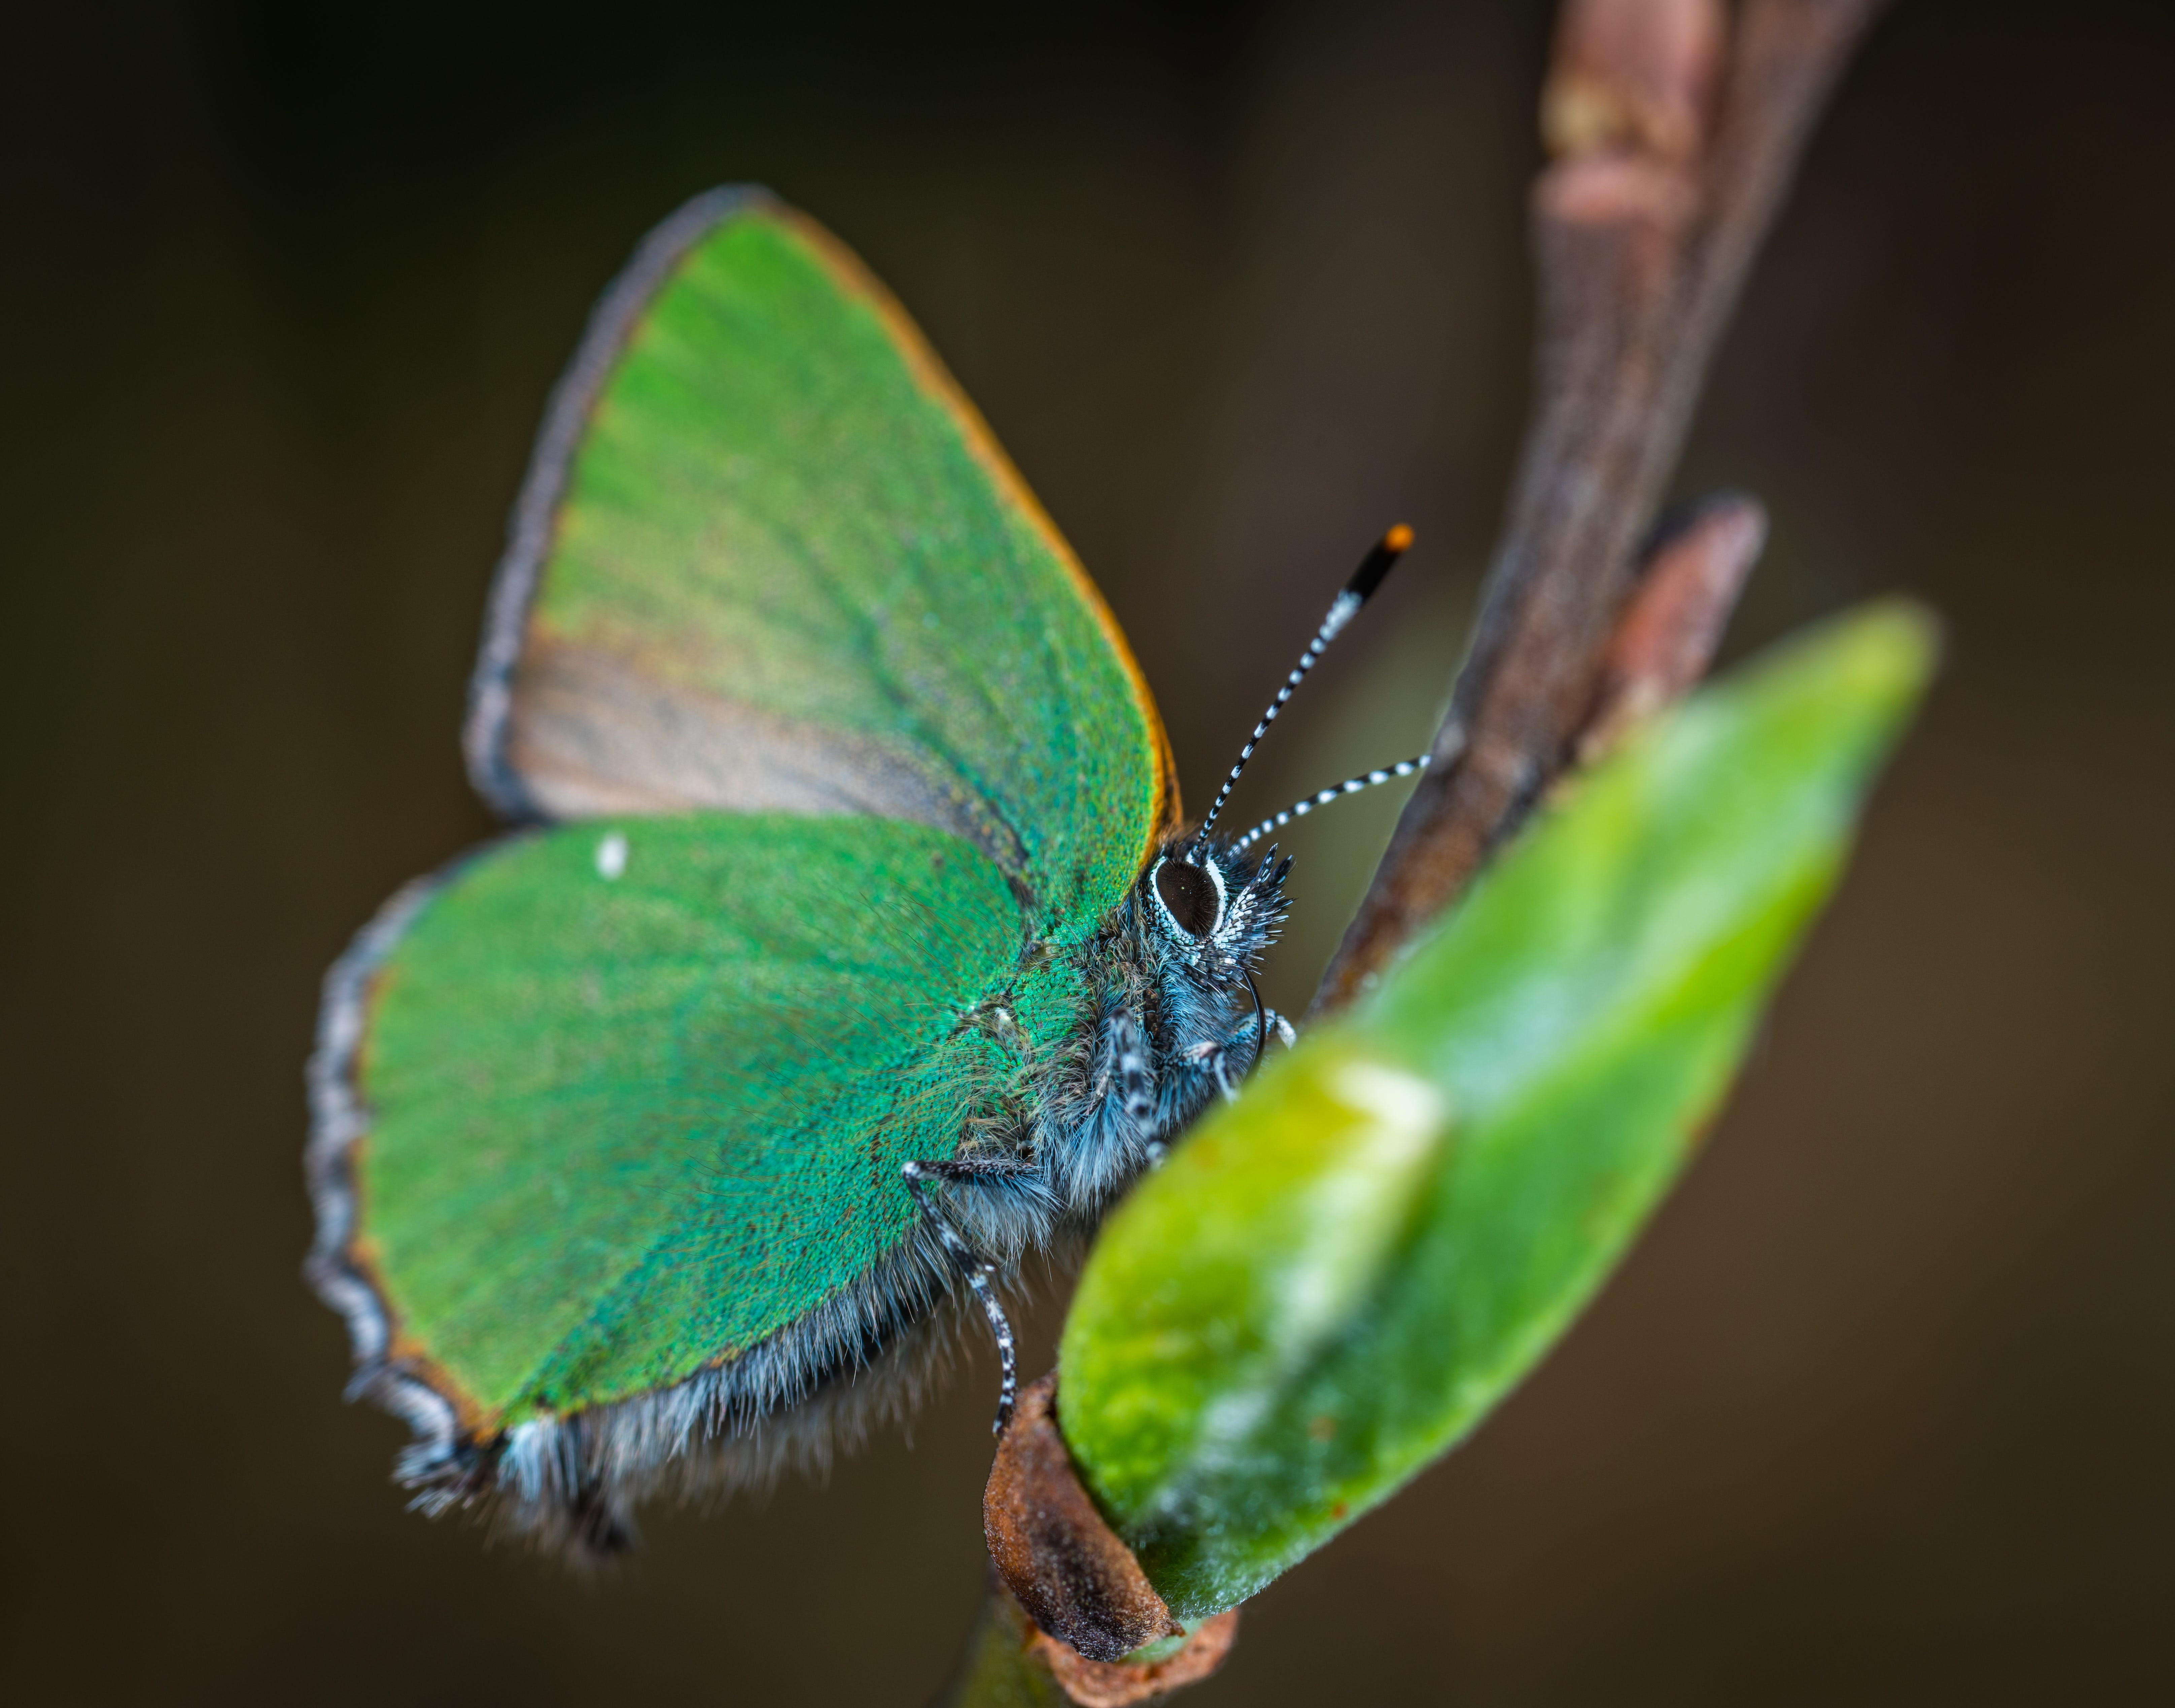 Cloudless Sulphur Butterfly Perched on Brown Plant Stem